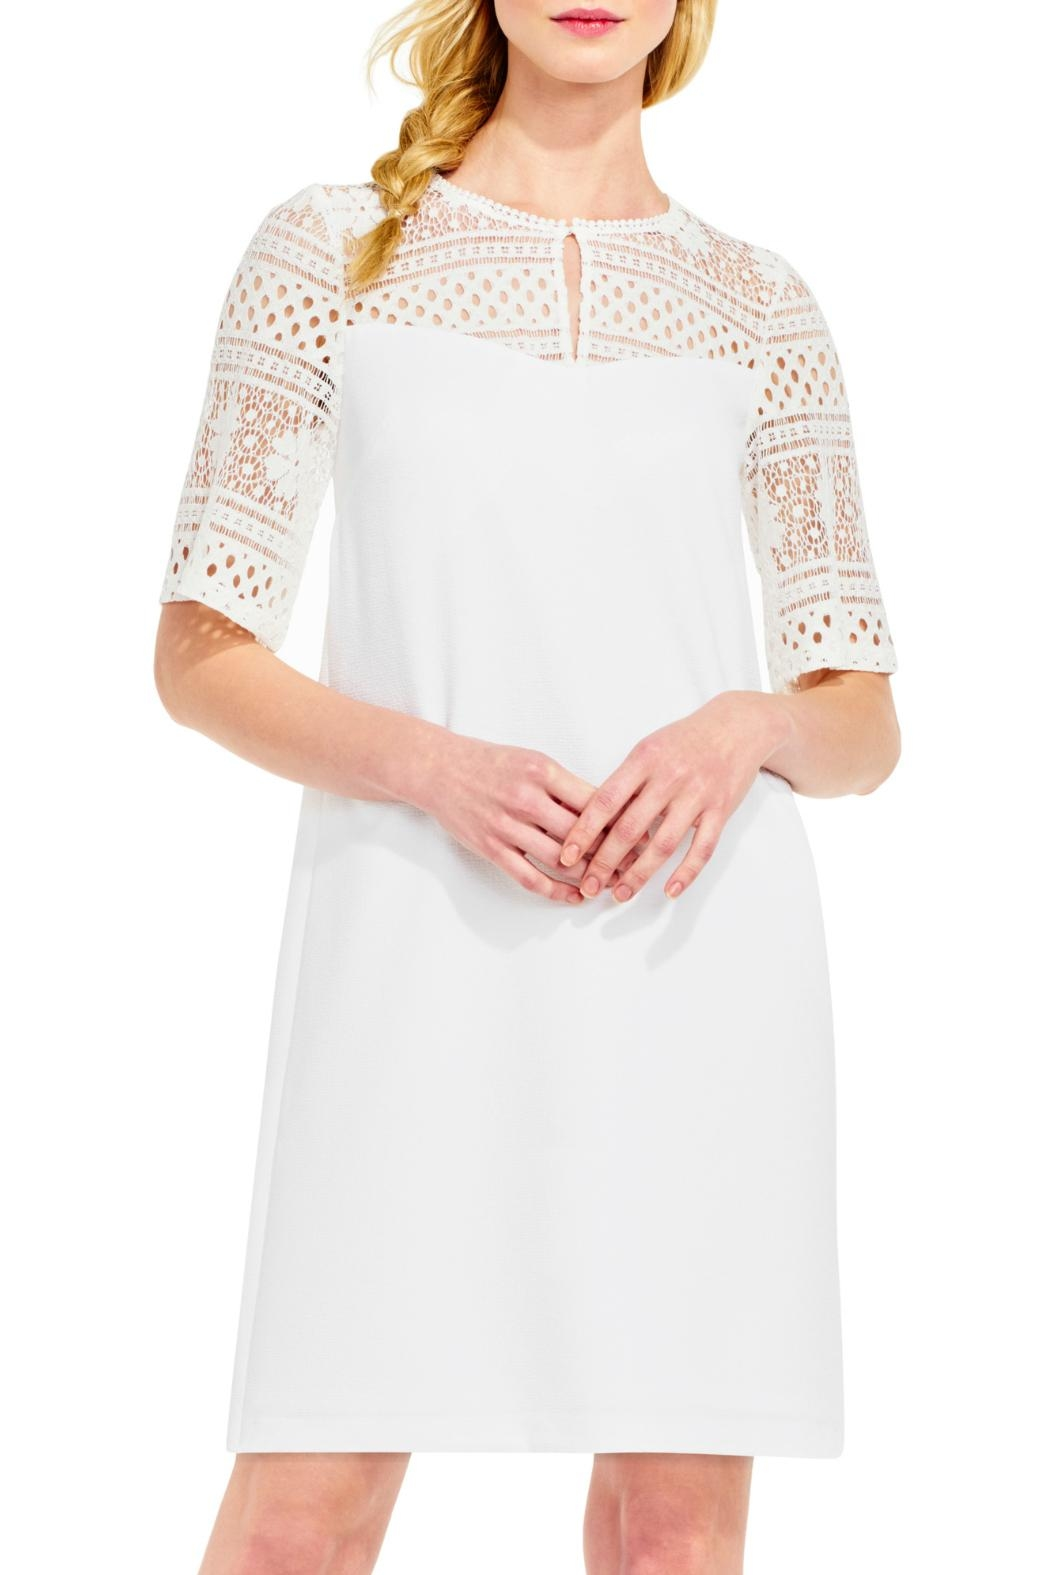 Adrianna Papell Lace Top Dress - Main Image